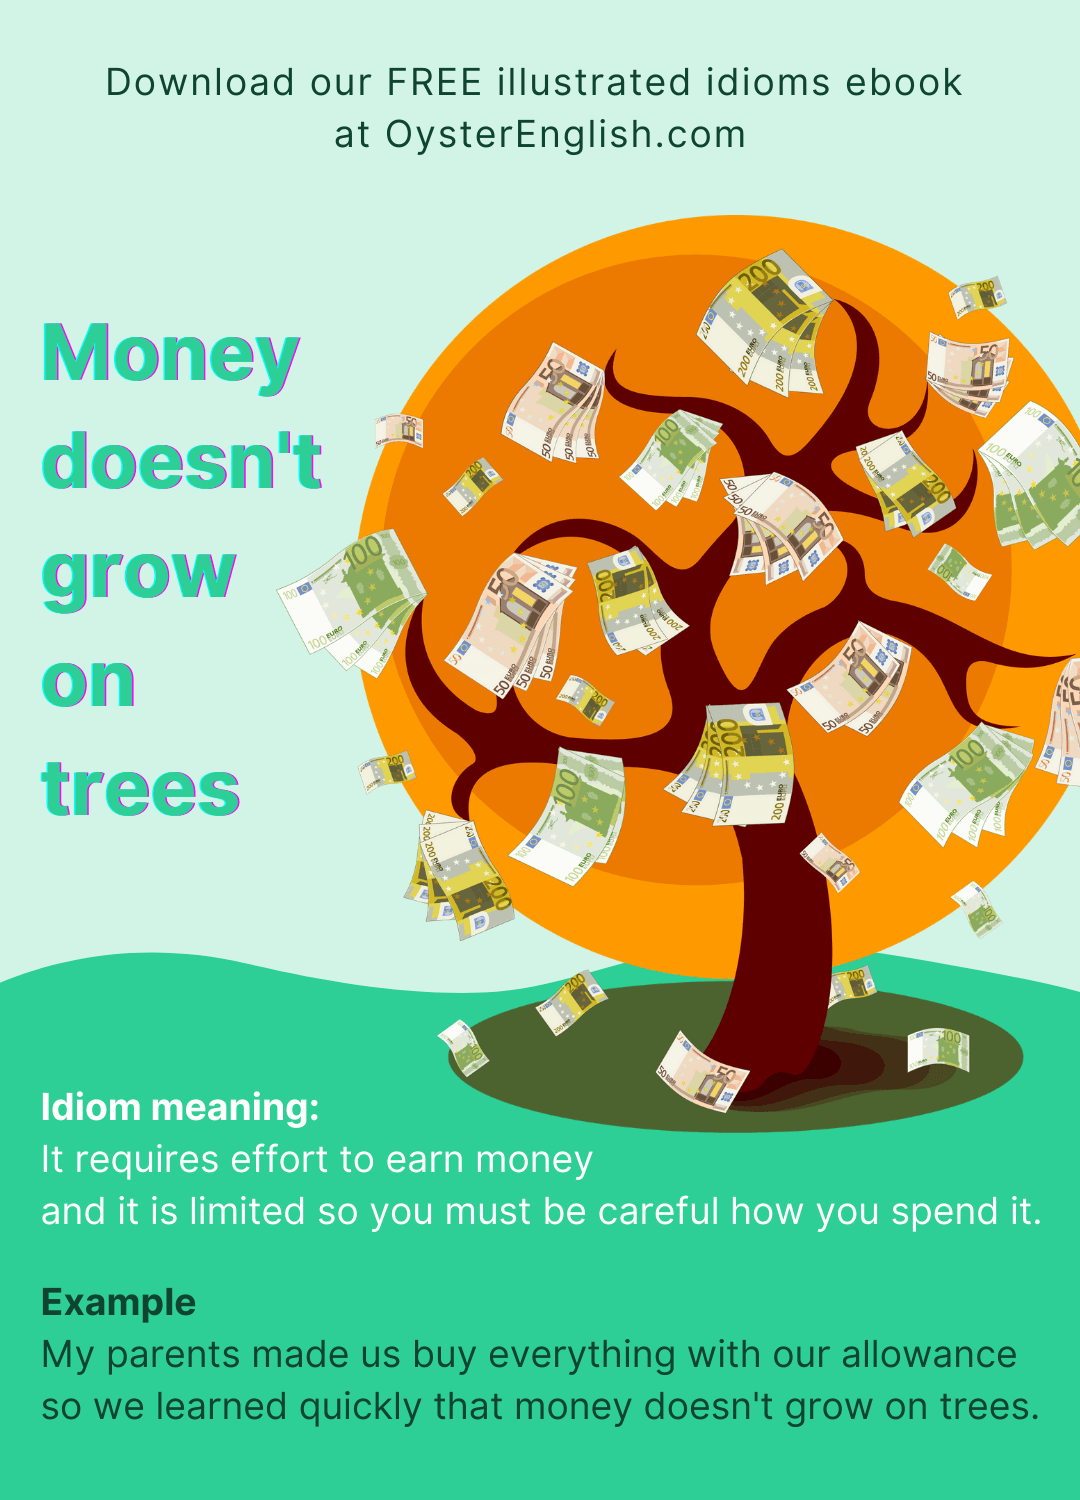 Image of a tree with euro bills attached to the branches. Caption: My parents made us buy everything with our allowance so we quickly learned that money doesn't grow on trees.